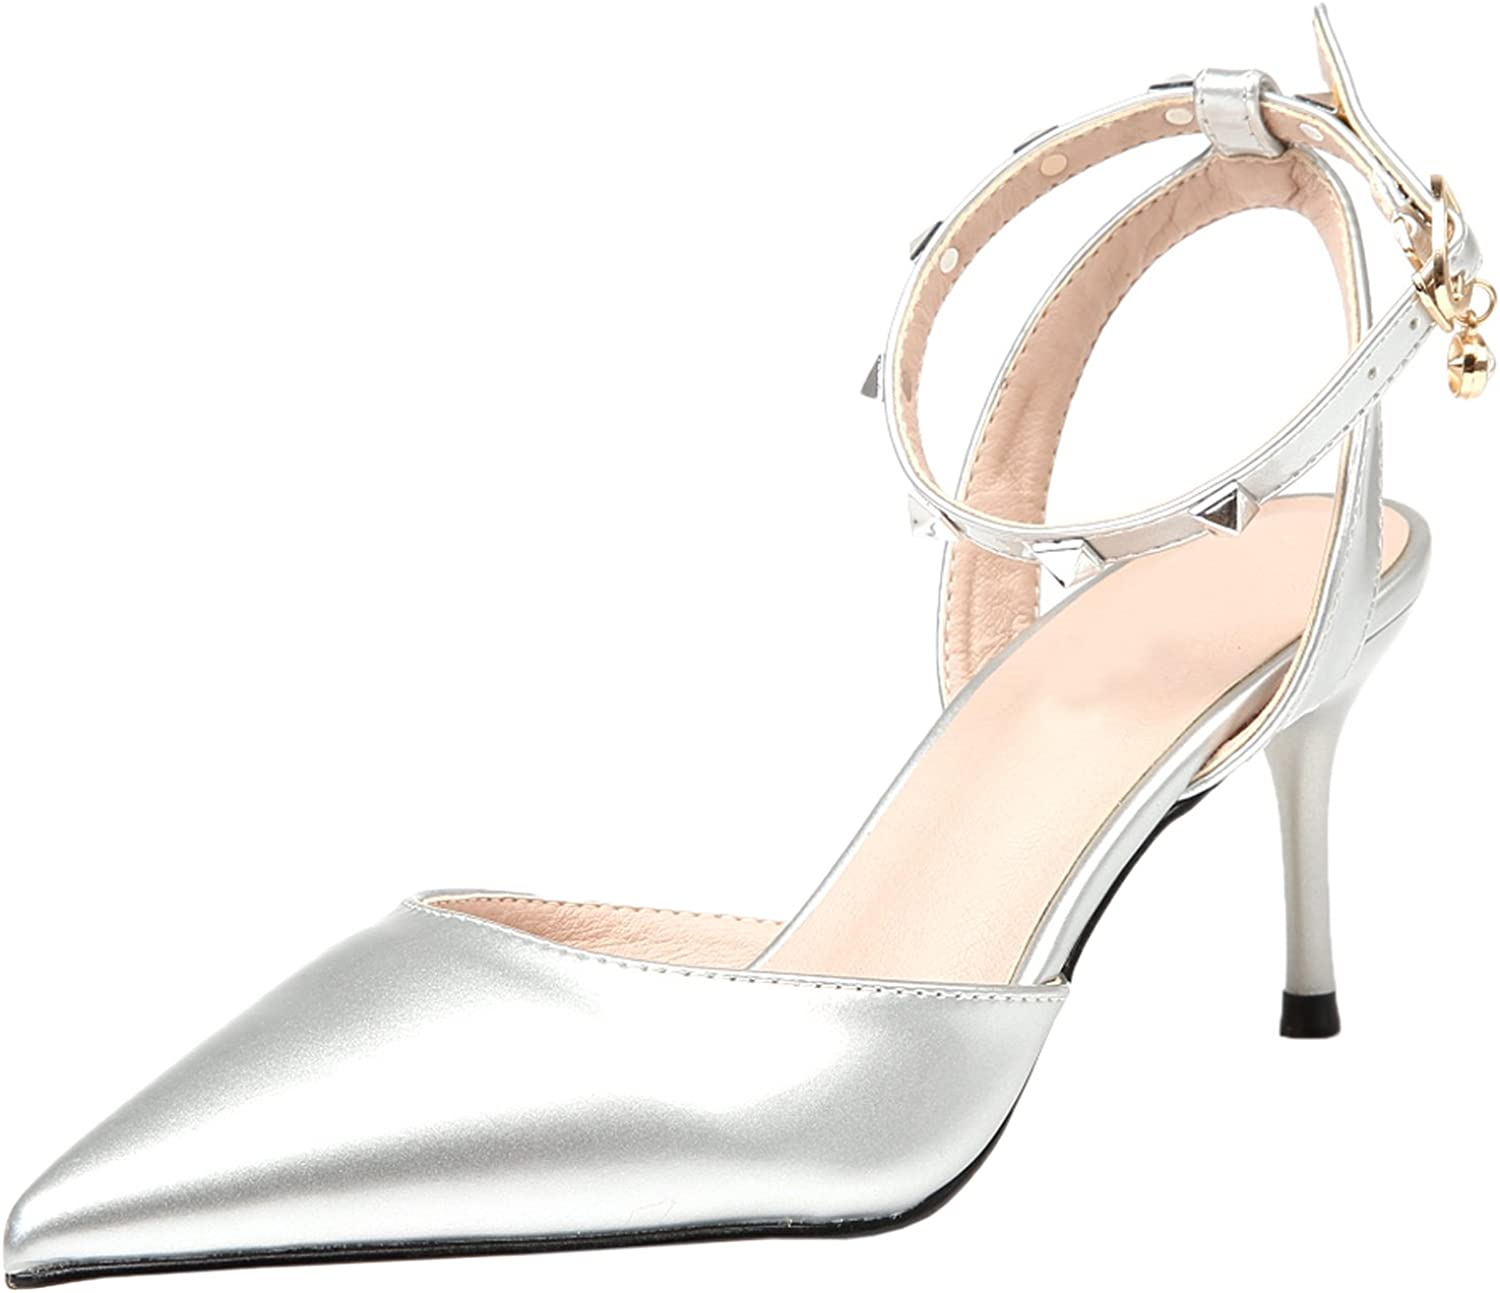 BIGTREE Dress Pumps Women Wedding Sandals Ankle Strap Pointed Toe Slingback Studded High Heels